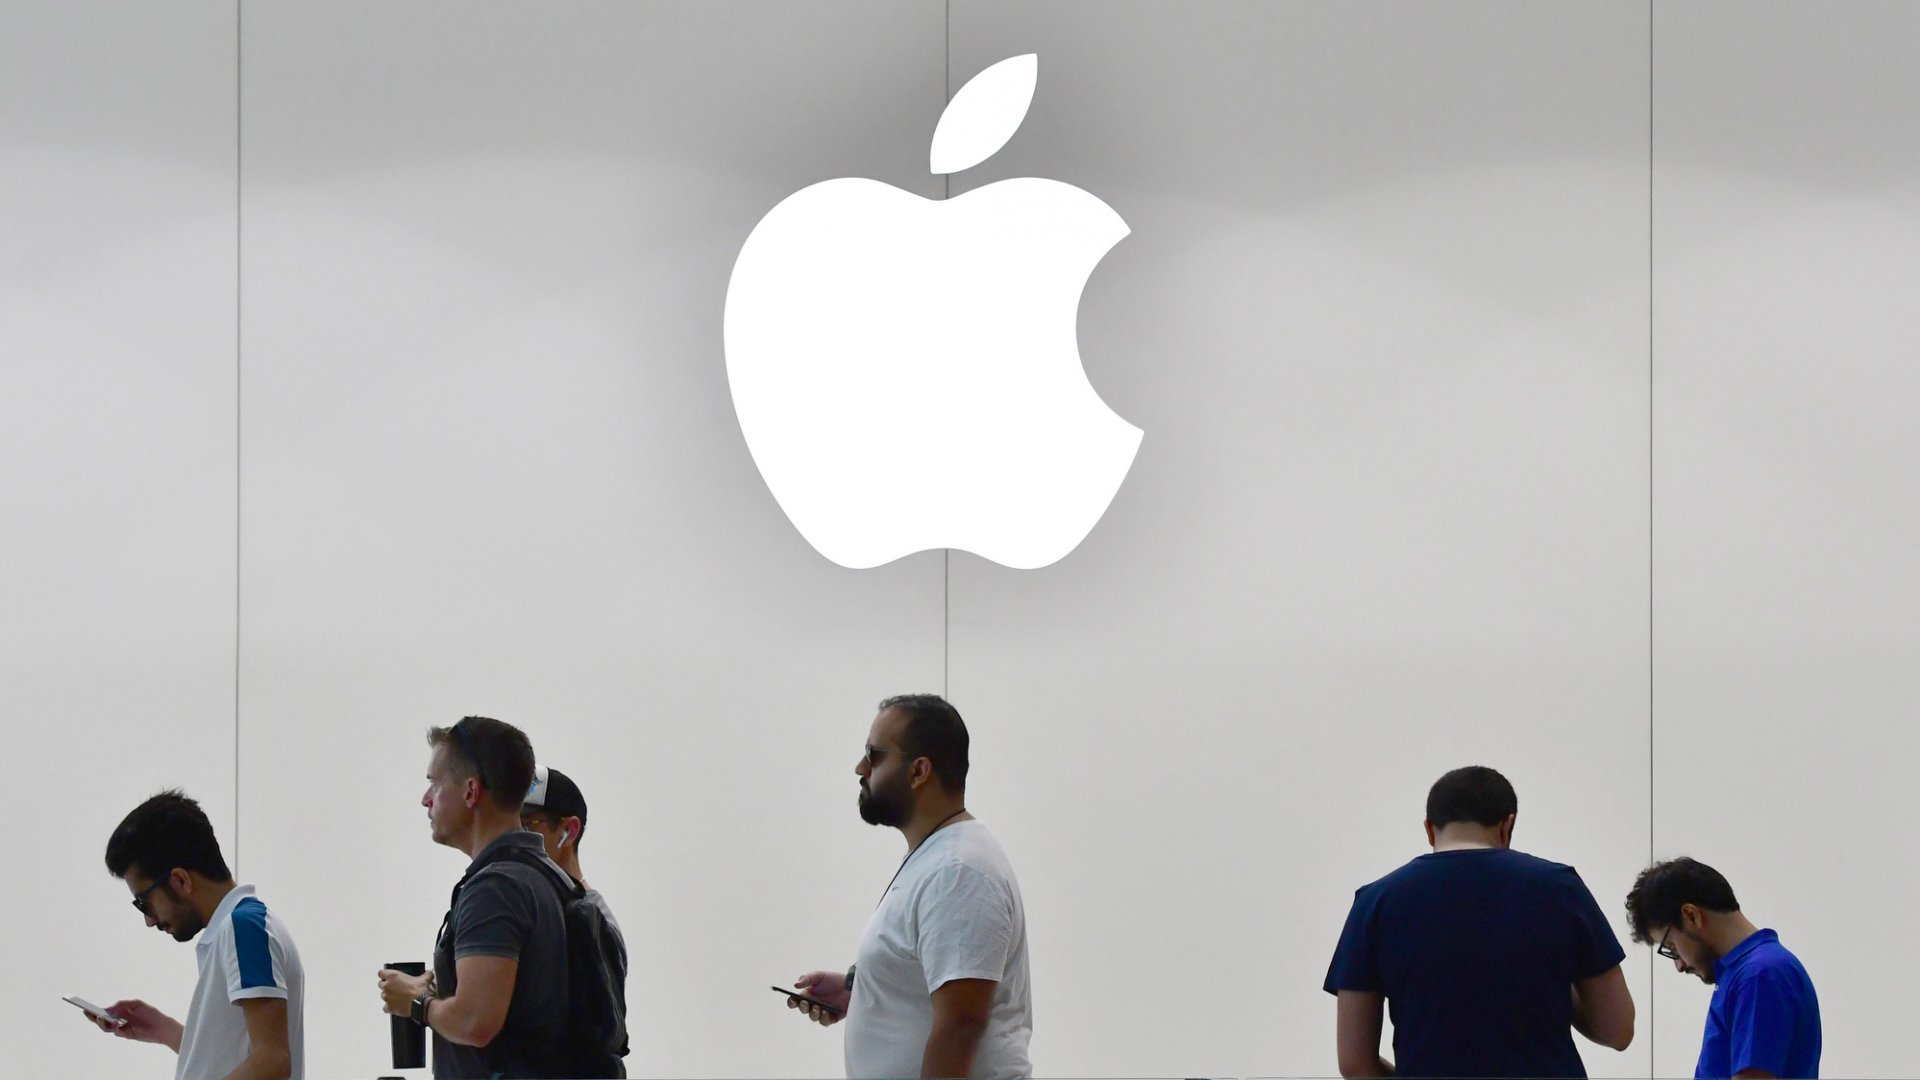 Apple's 2020 Launch Event Comes With A lot On The Table